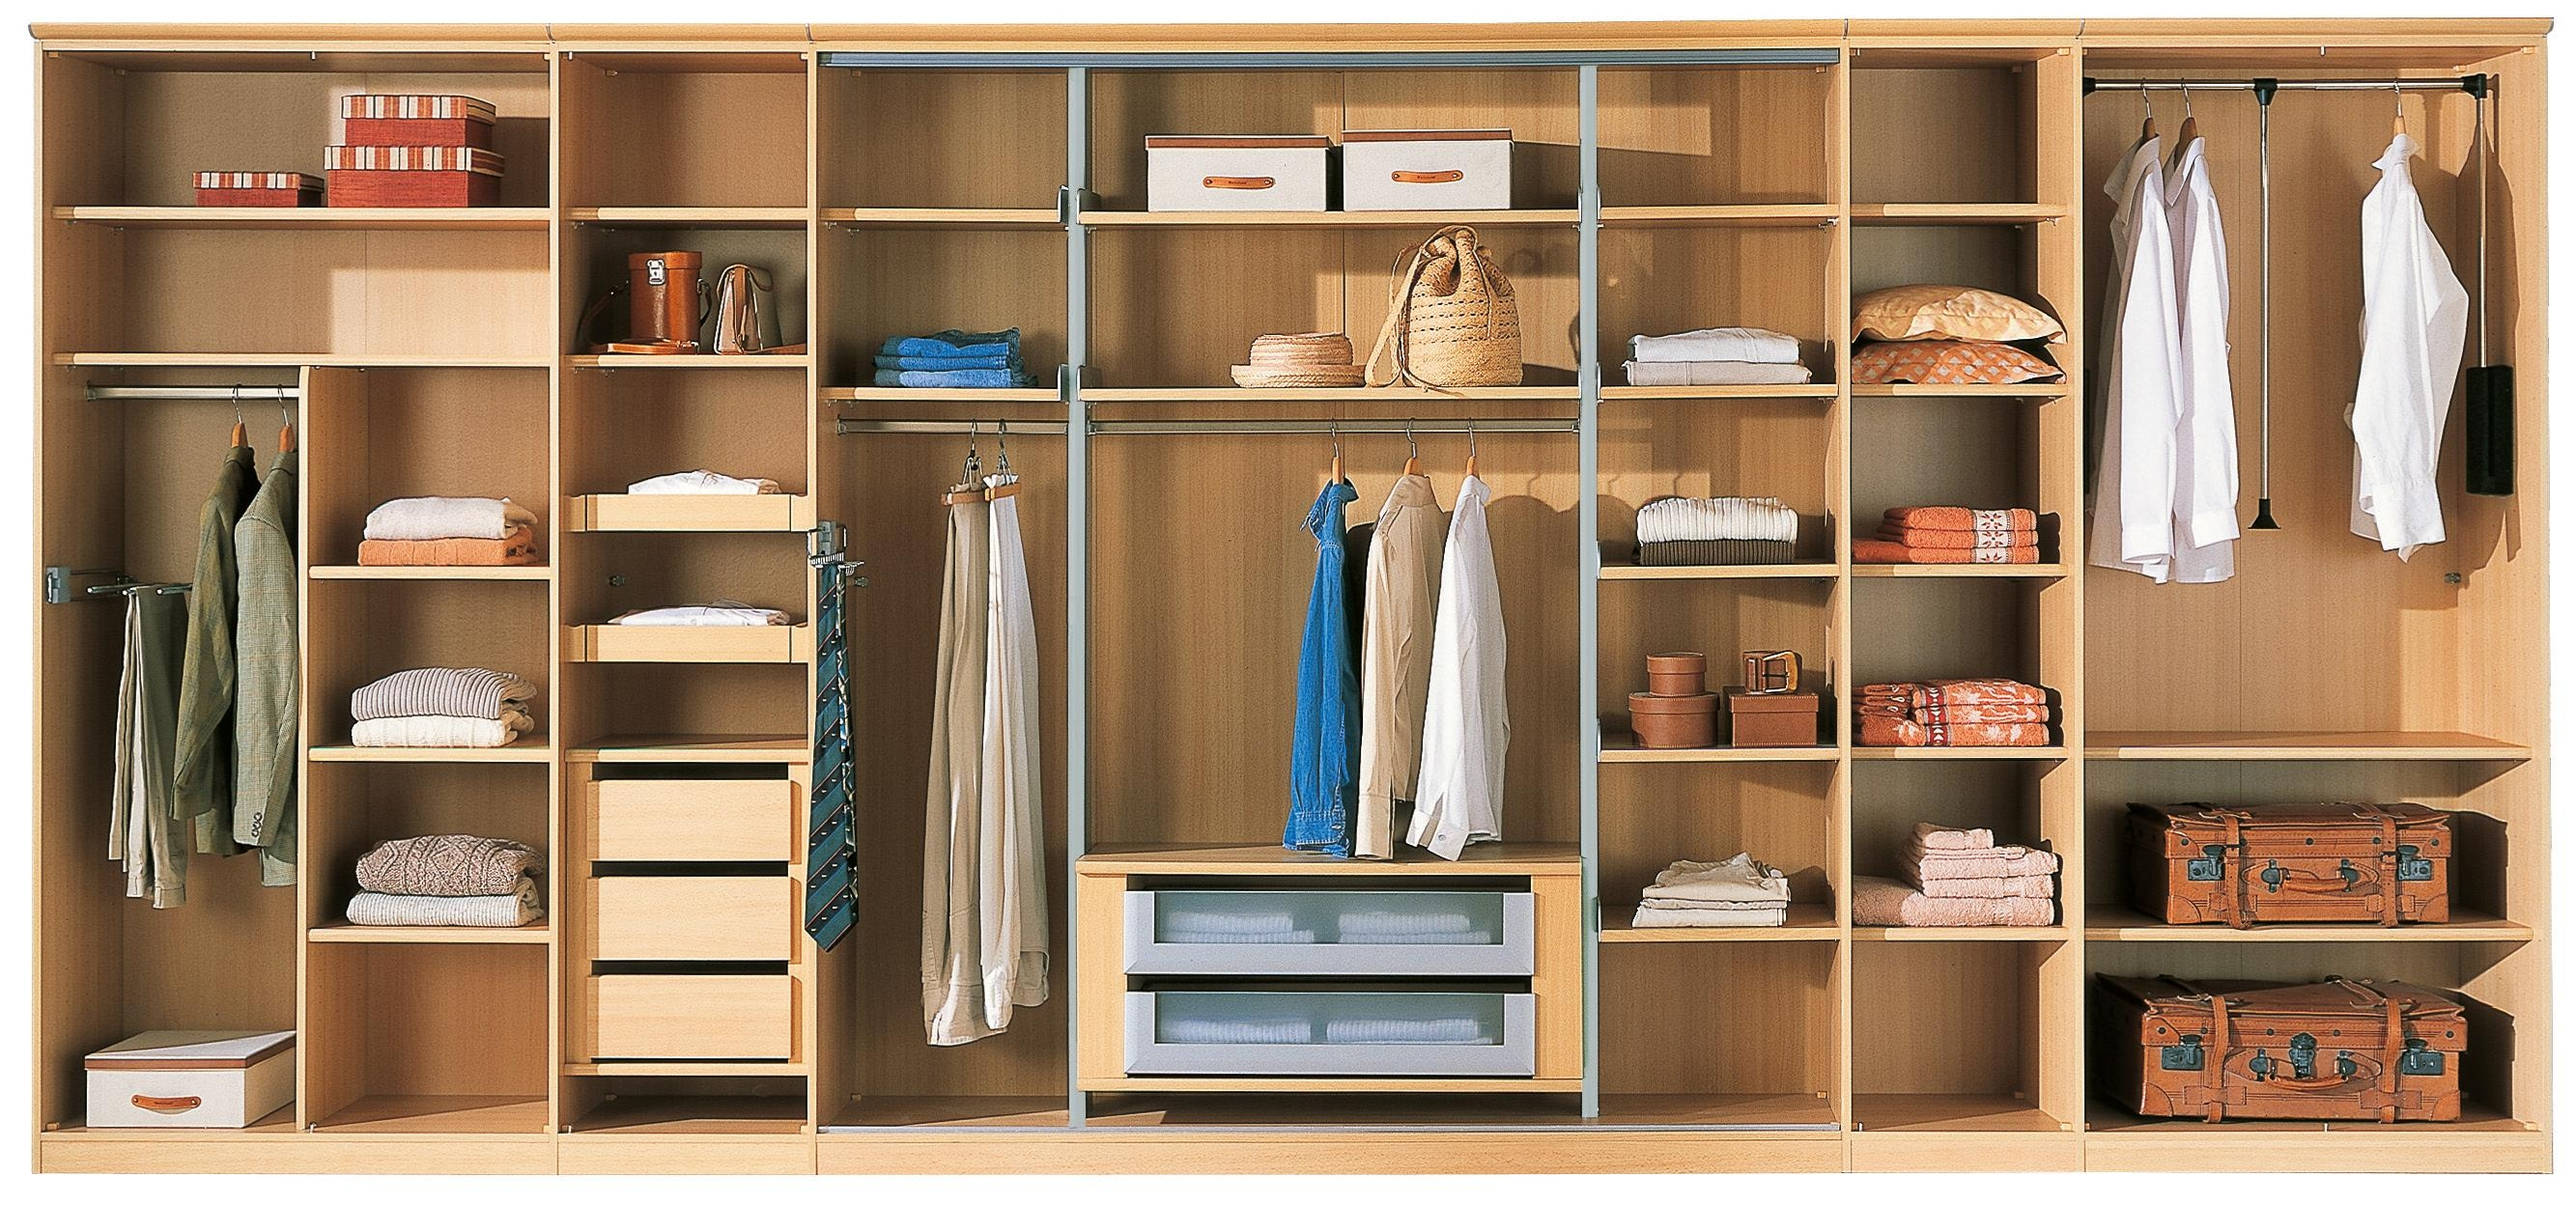 Bedroom Wardrobe Interior Shelves Design Ideas 2017 2018 Pertaining To Wardrobes With Shelves And Drawers (View 6 of 15)